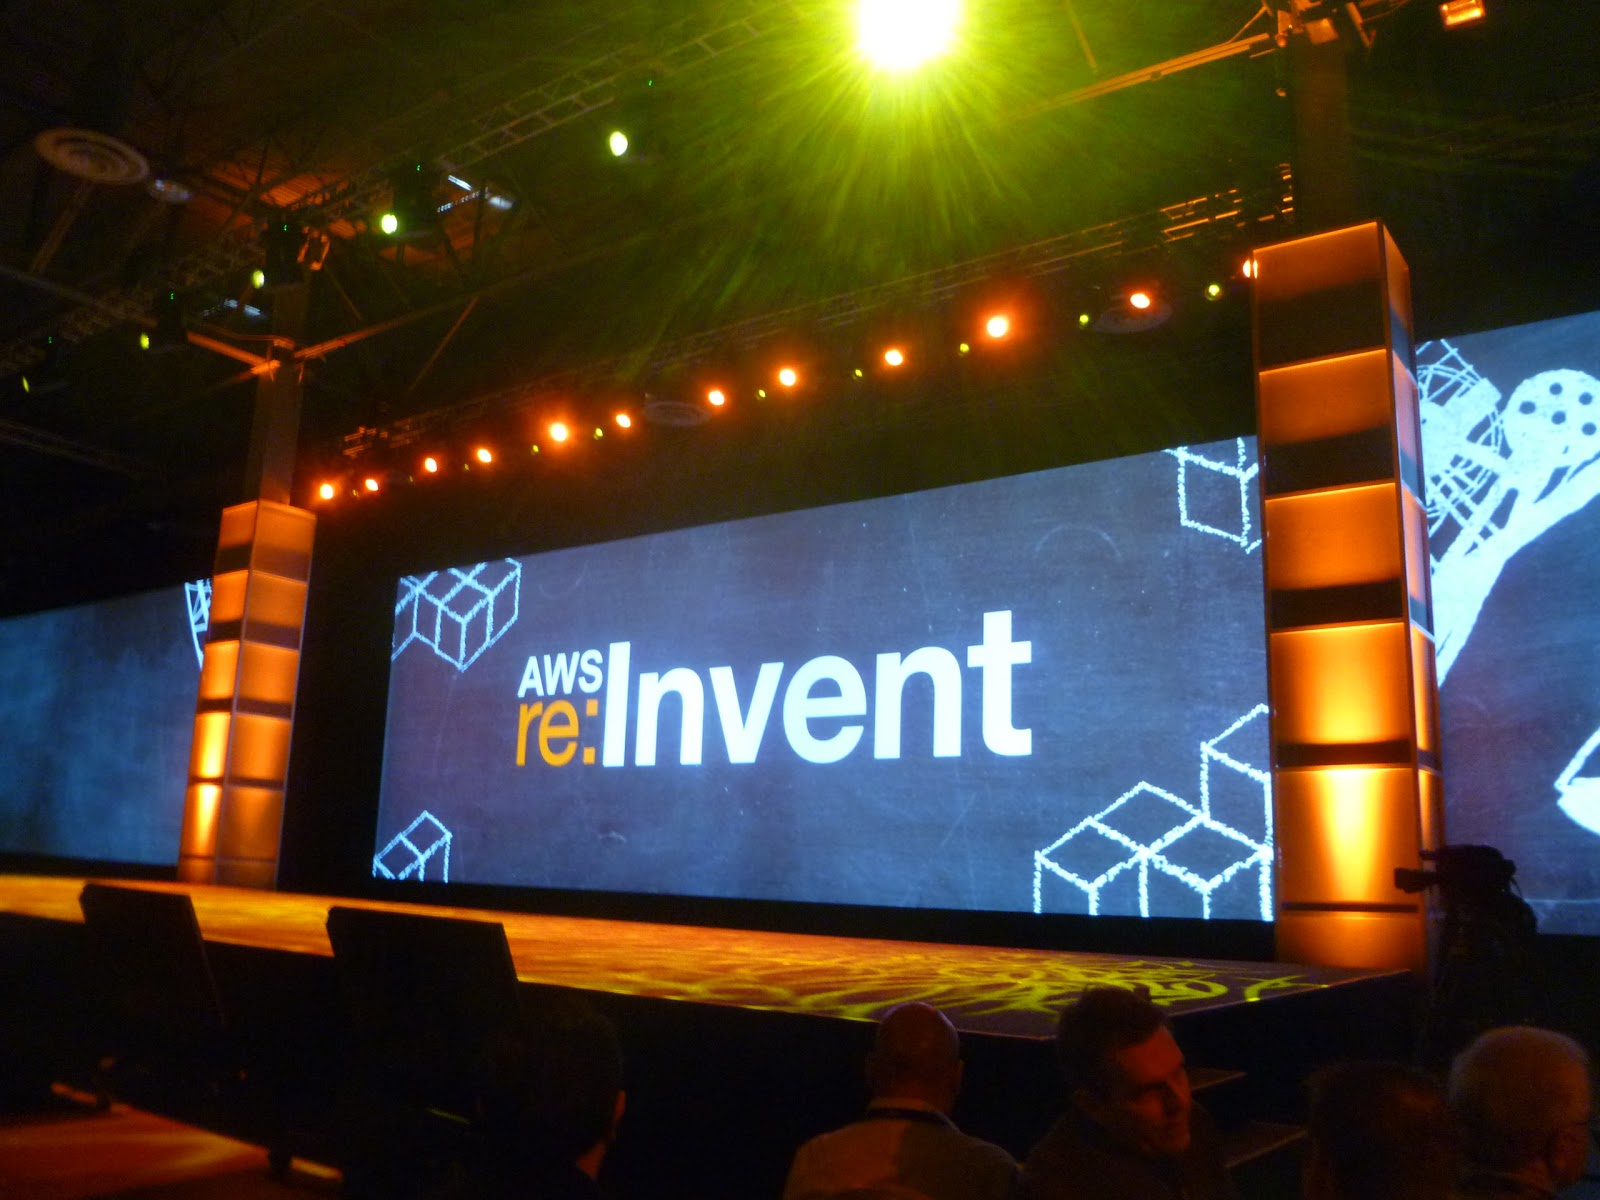 amazon-web-services-re-invent-blog-domenech-org